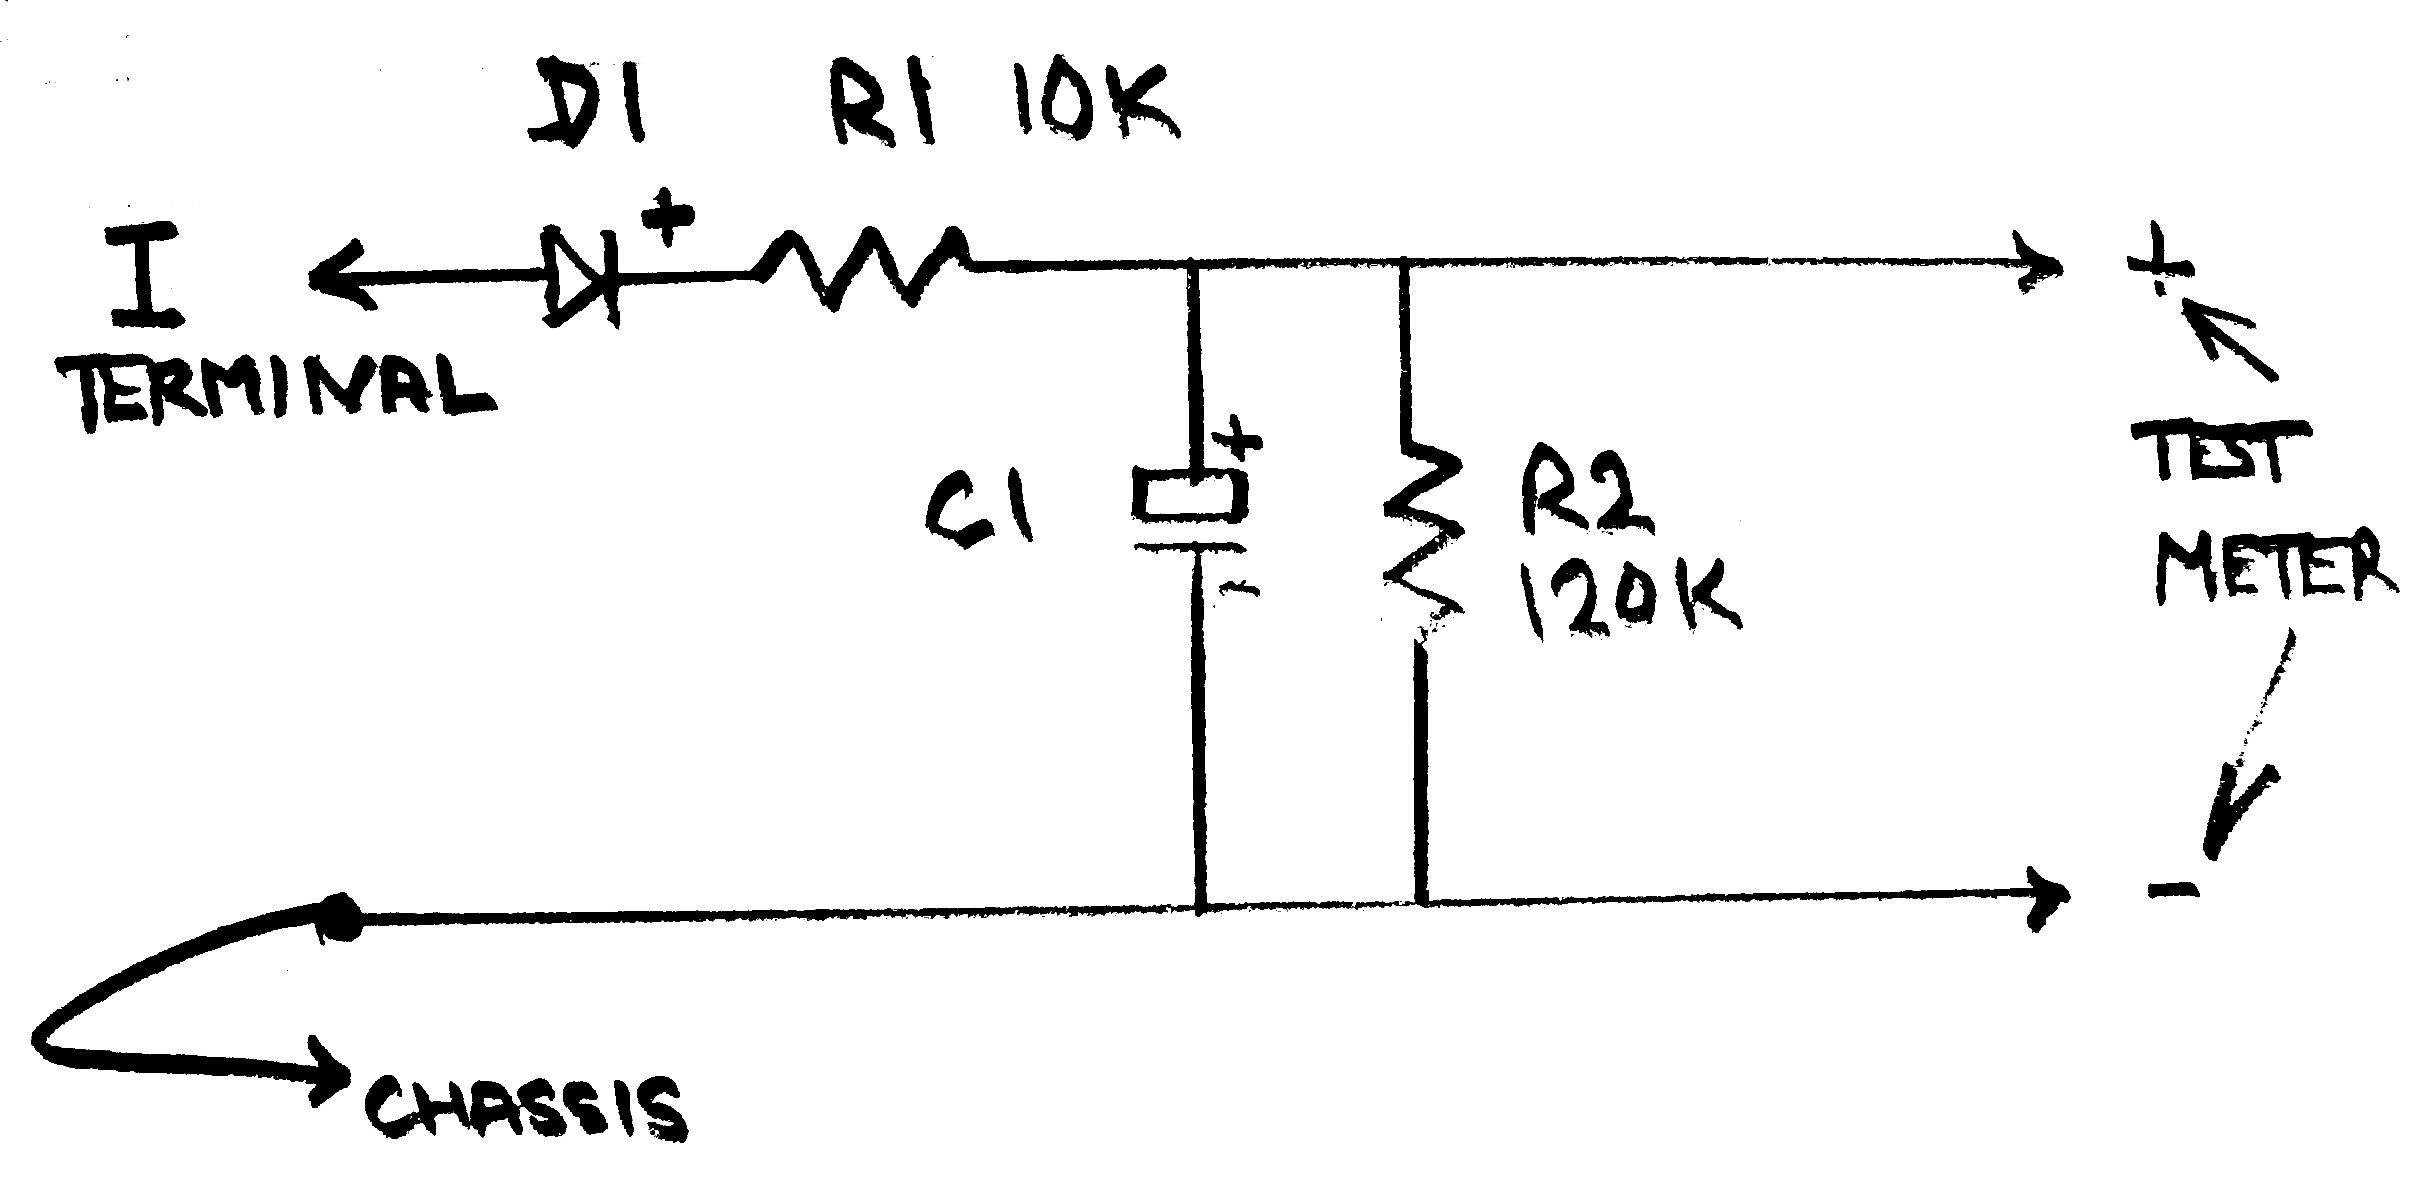 pic-test-circuit-diag-ivs-edit-b-070716